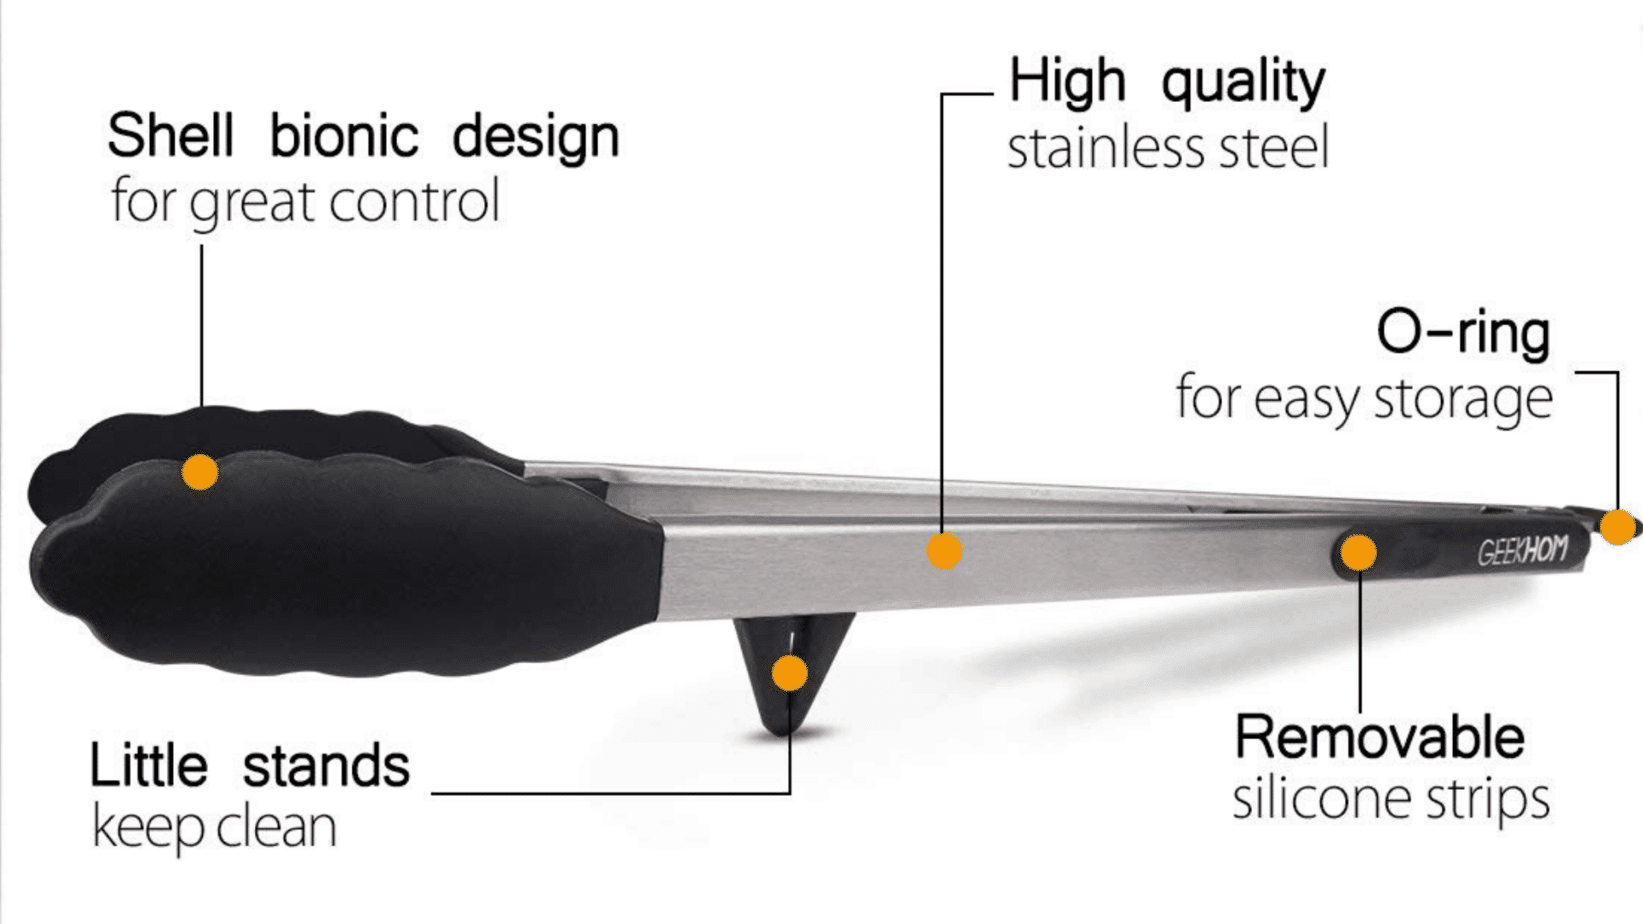 Diagram of GEEKHOM Tong 16-Inch Extra Long BBQ Grilling Tongs for Cooking